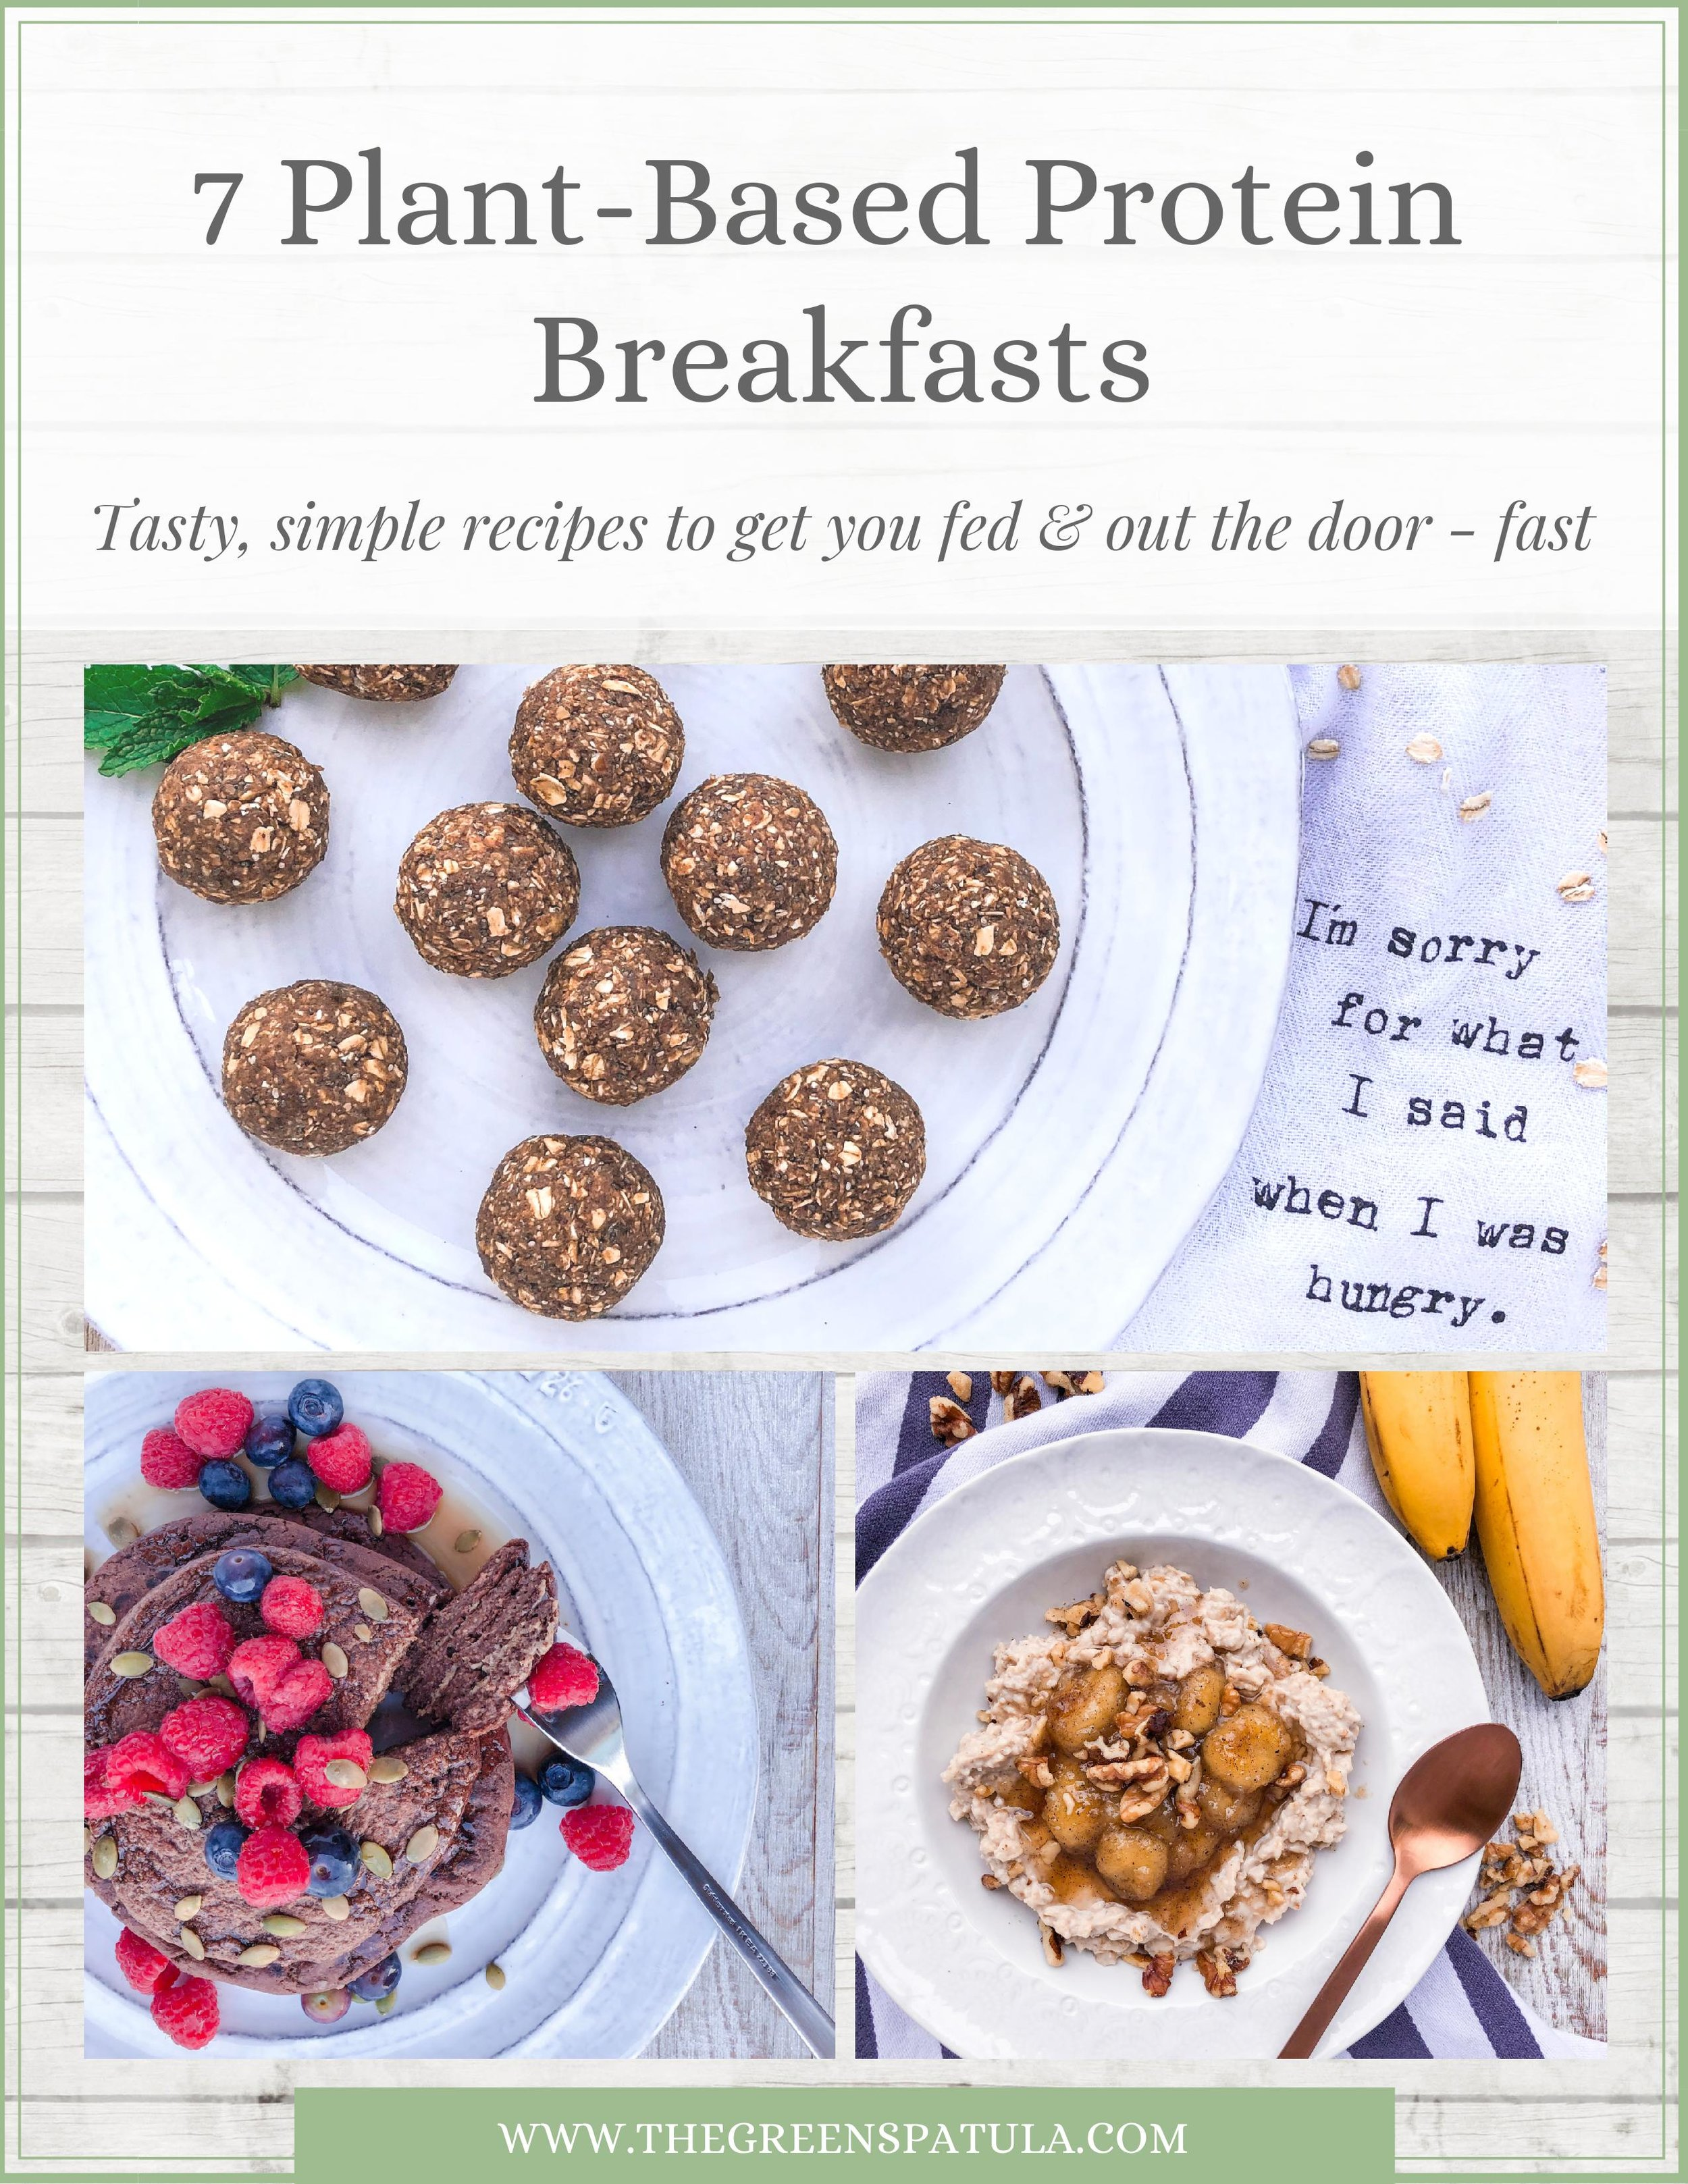 7 Plant-Based Protein Breakfasts - Download this FREE guide filled with 7 tasty plant-based breakfast recipes to get you fed and out the door - FAST! Simplify your mornings by meal prepping your breakfasts so you can fuel up for the day ahead and curb midday cravings and energy slumps. All recipes are vegan, plant-based, gluten-free, and delicious. Great for kids and adults! #plantbased #healthybreakfast #protein #vegan #glutenfree #breakfast #mealprep #freedownload